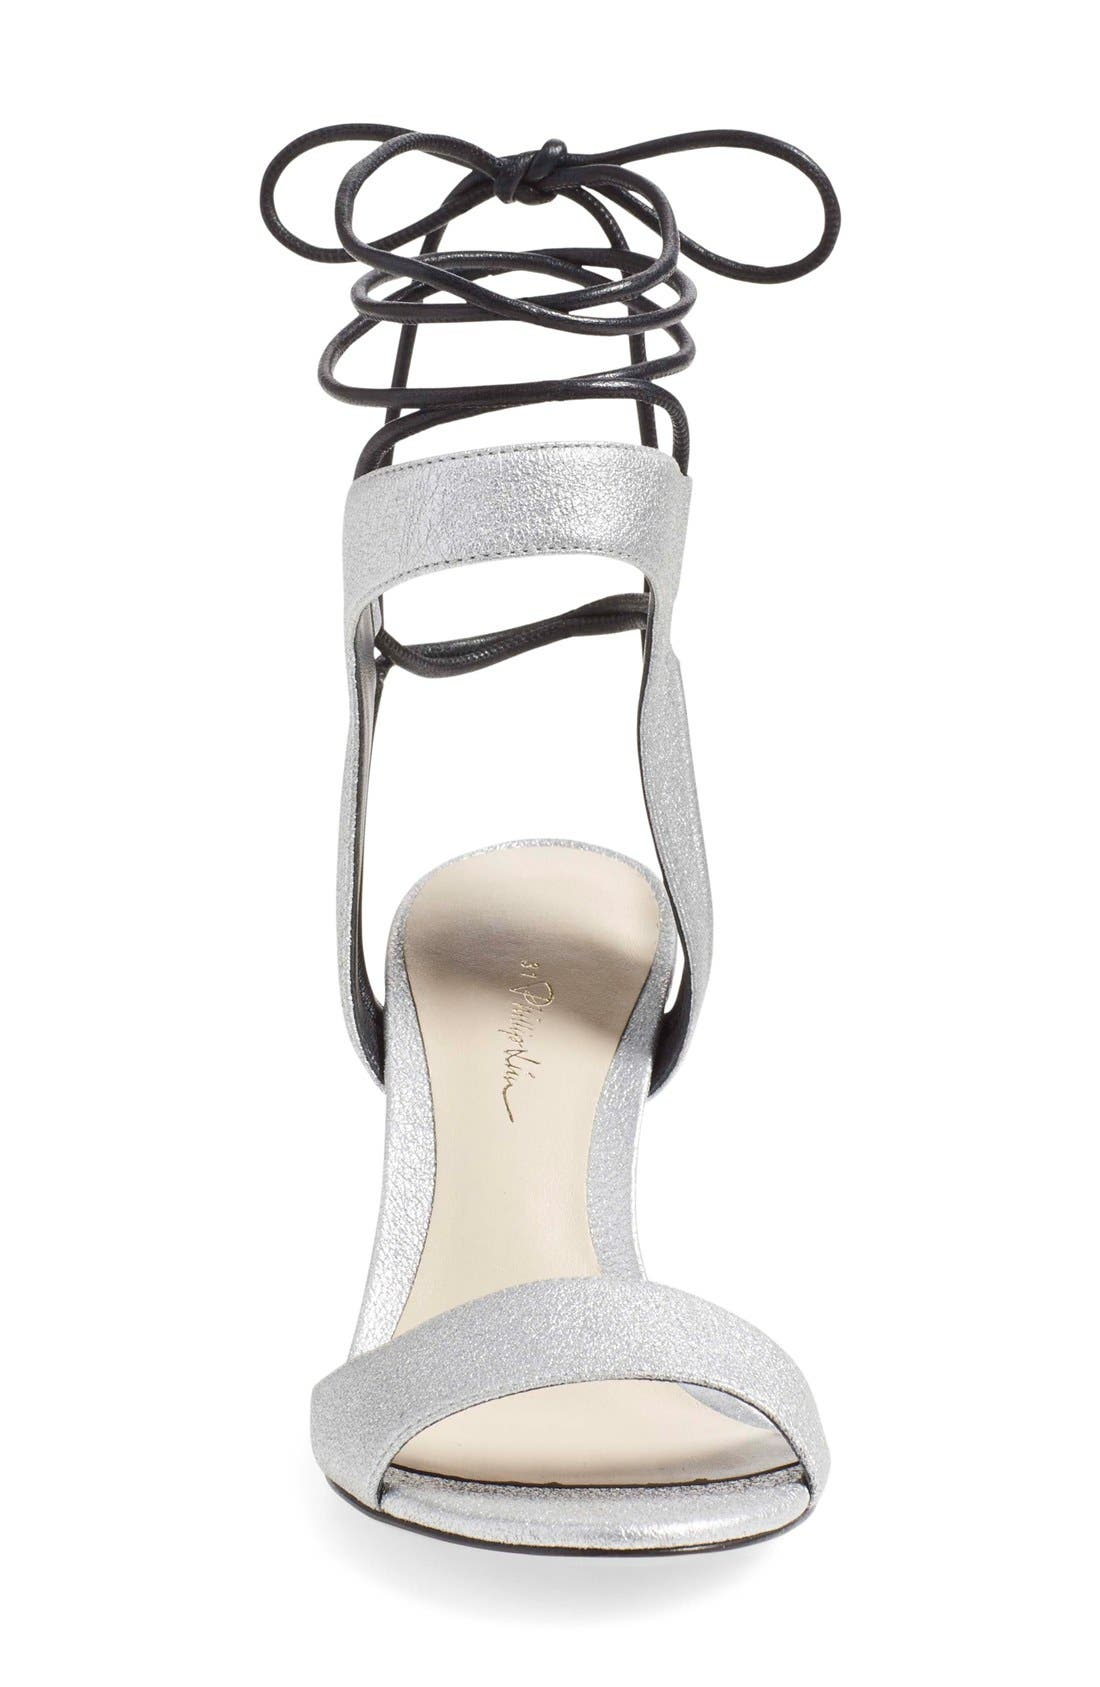 Alternate Image 3  - 3.1 Phillip Lim 'Martini' Wraparound Ankle Strap Sandal (Women)